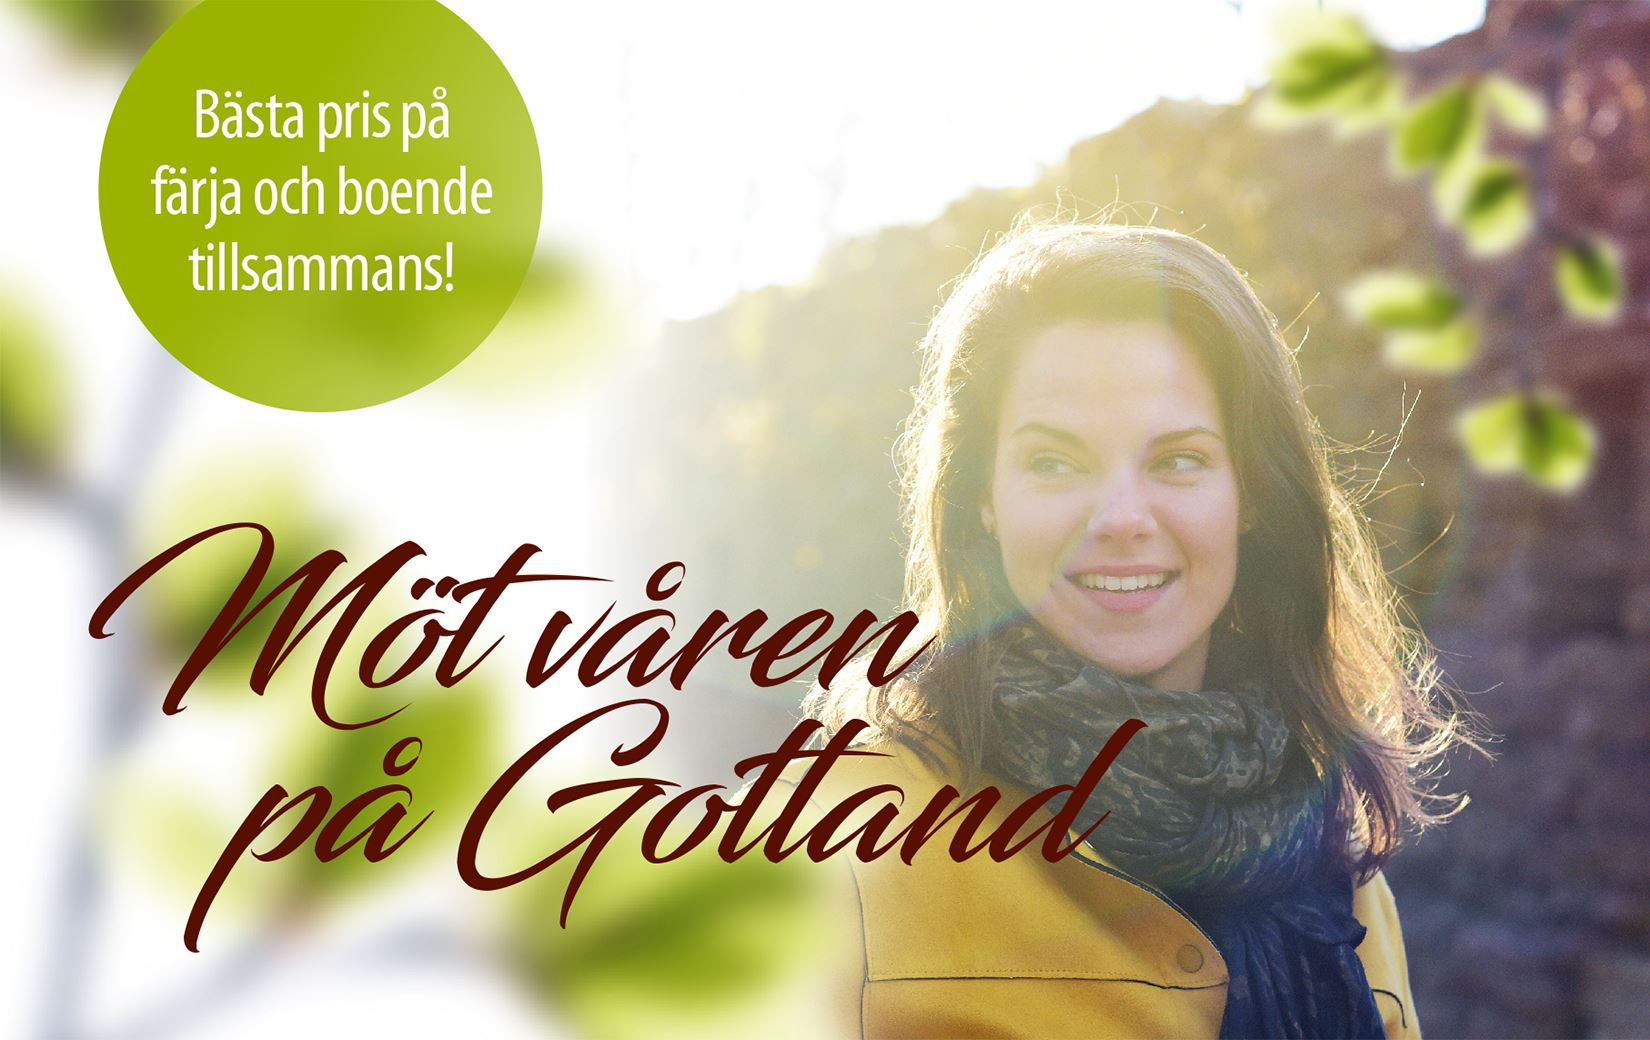 The Gotland Package